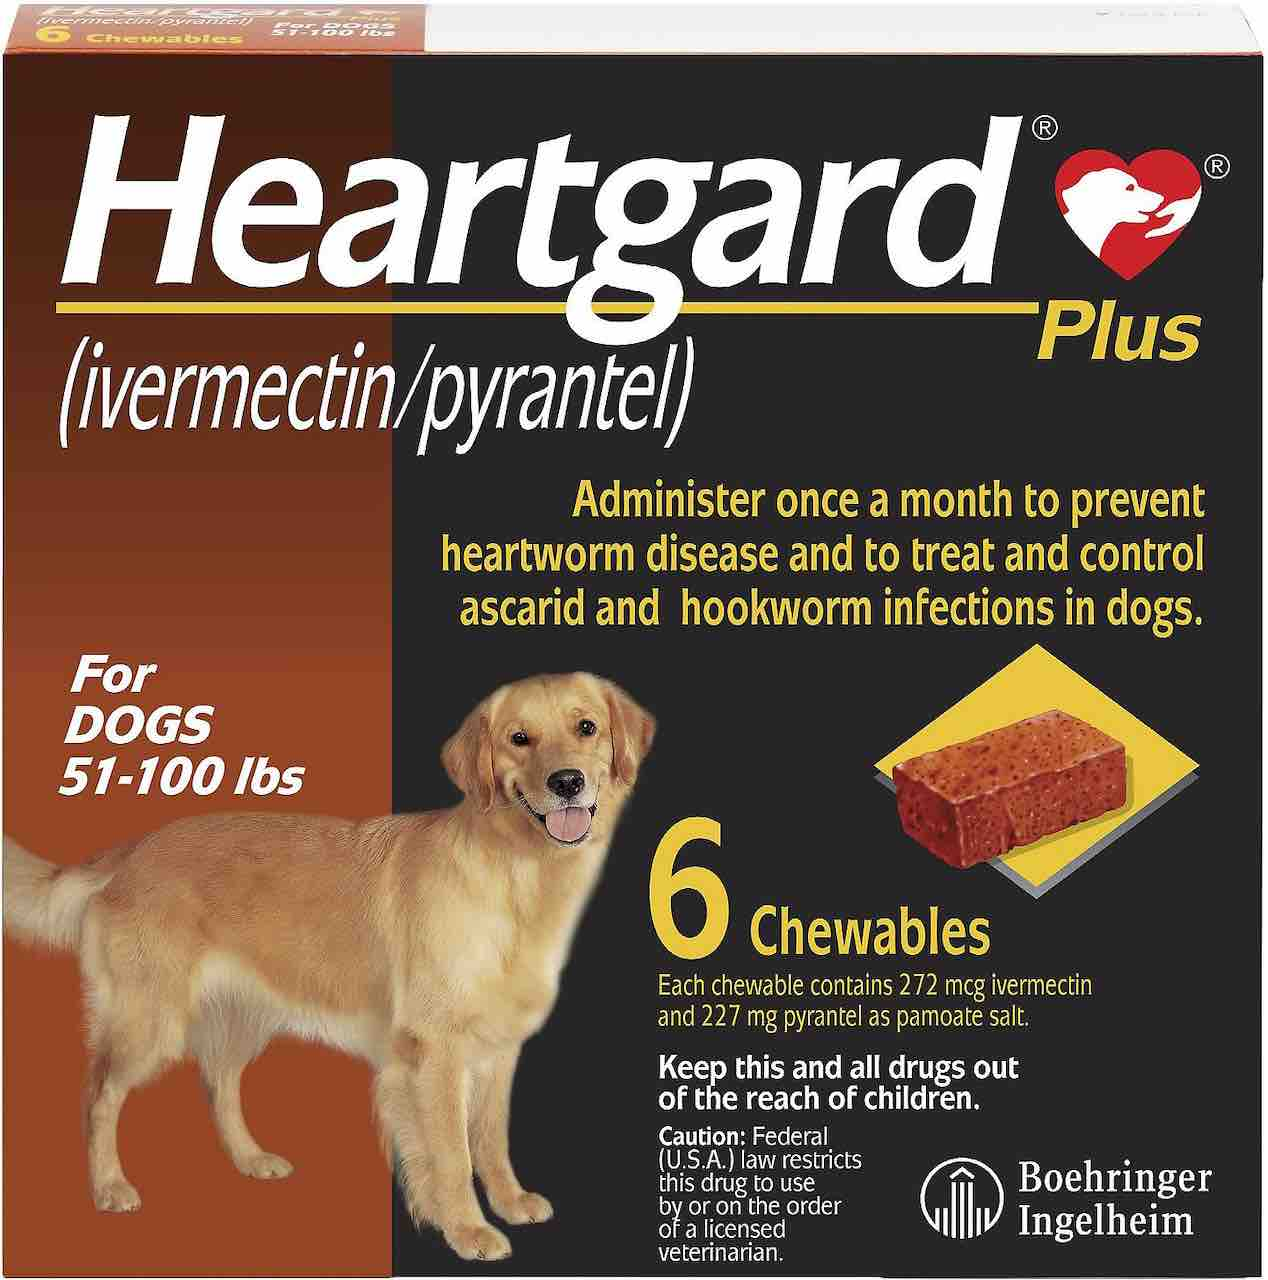 Heartgard Plus Chewables 6 doses for dogs 51-100 lbs (Brown) 1